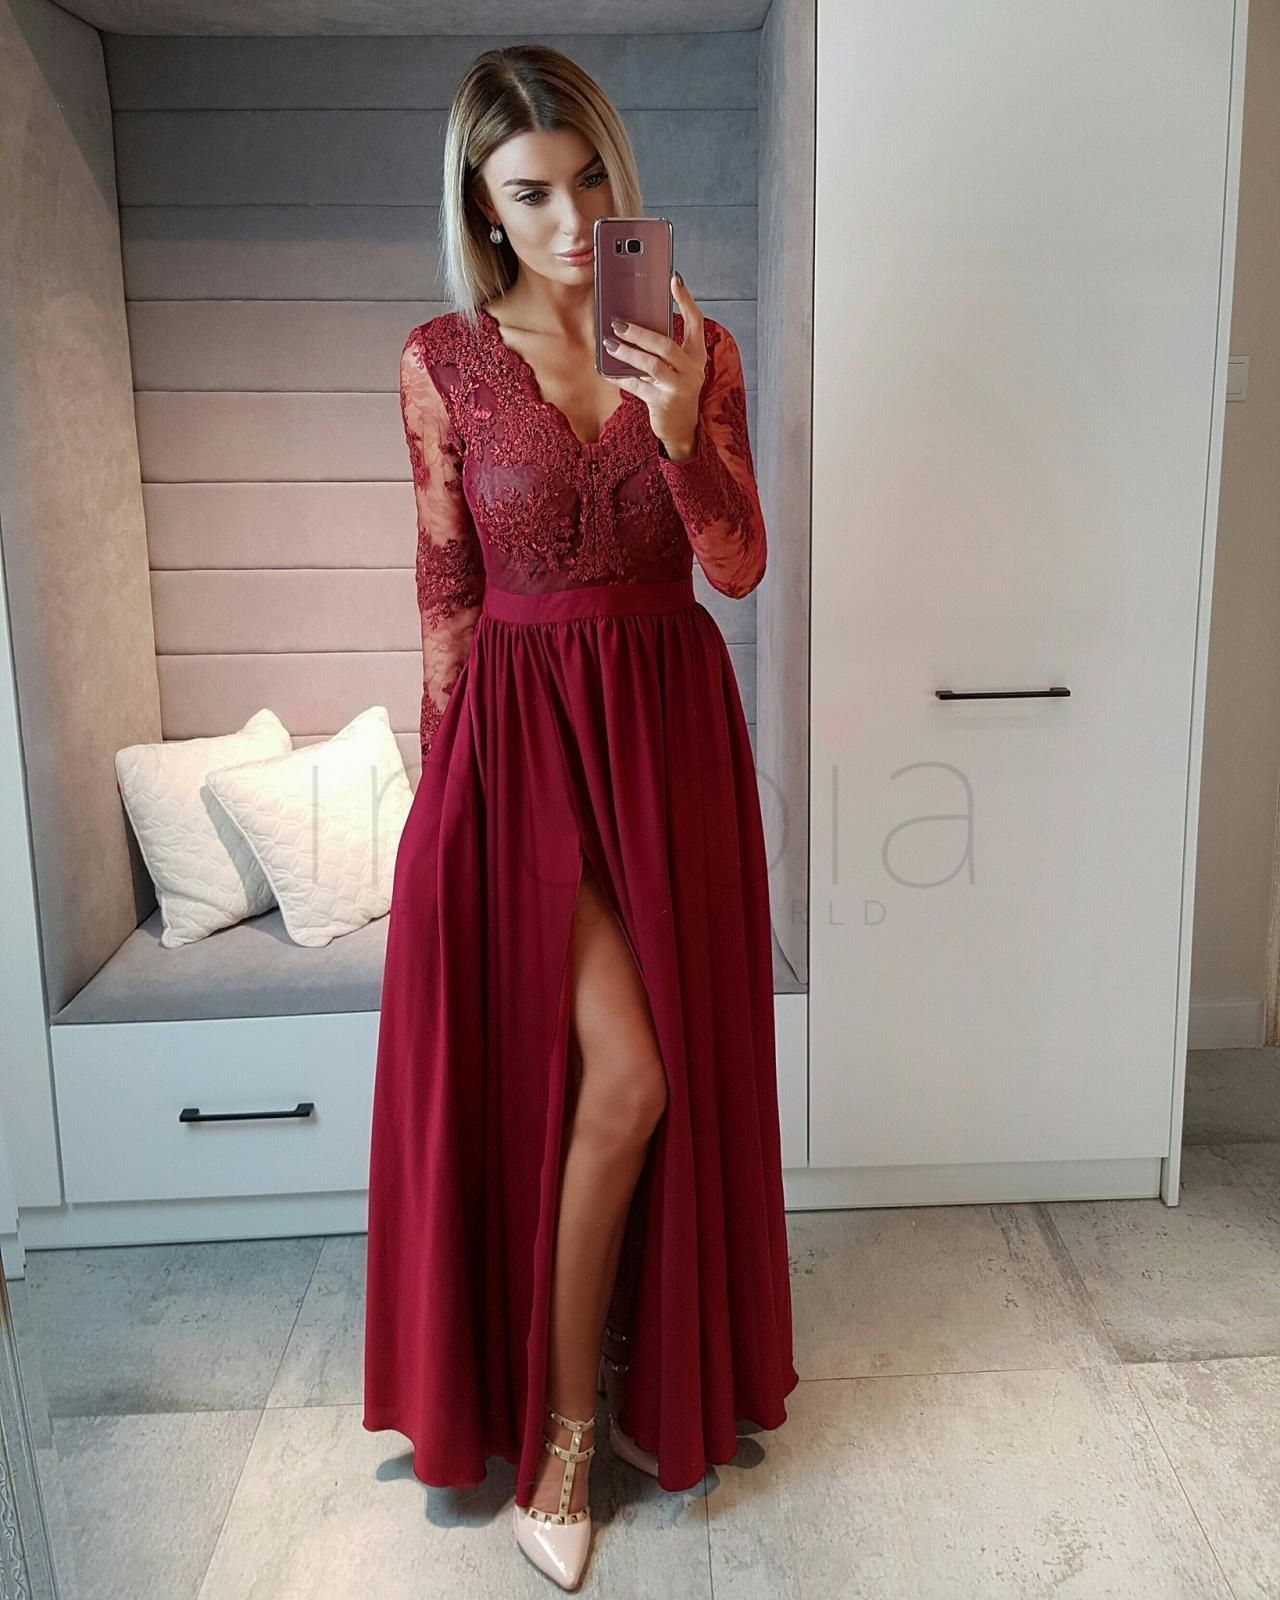 Long Sleeves Wine Red Prom Dress Formal Occasion Dress Burgundy Prom Dresses Blue Party Dresses Evening Gowns [ 1600 x 1280 Pixel ]